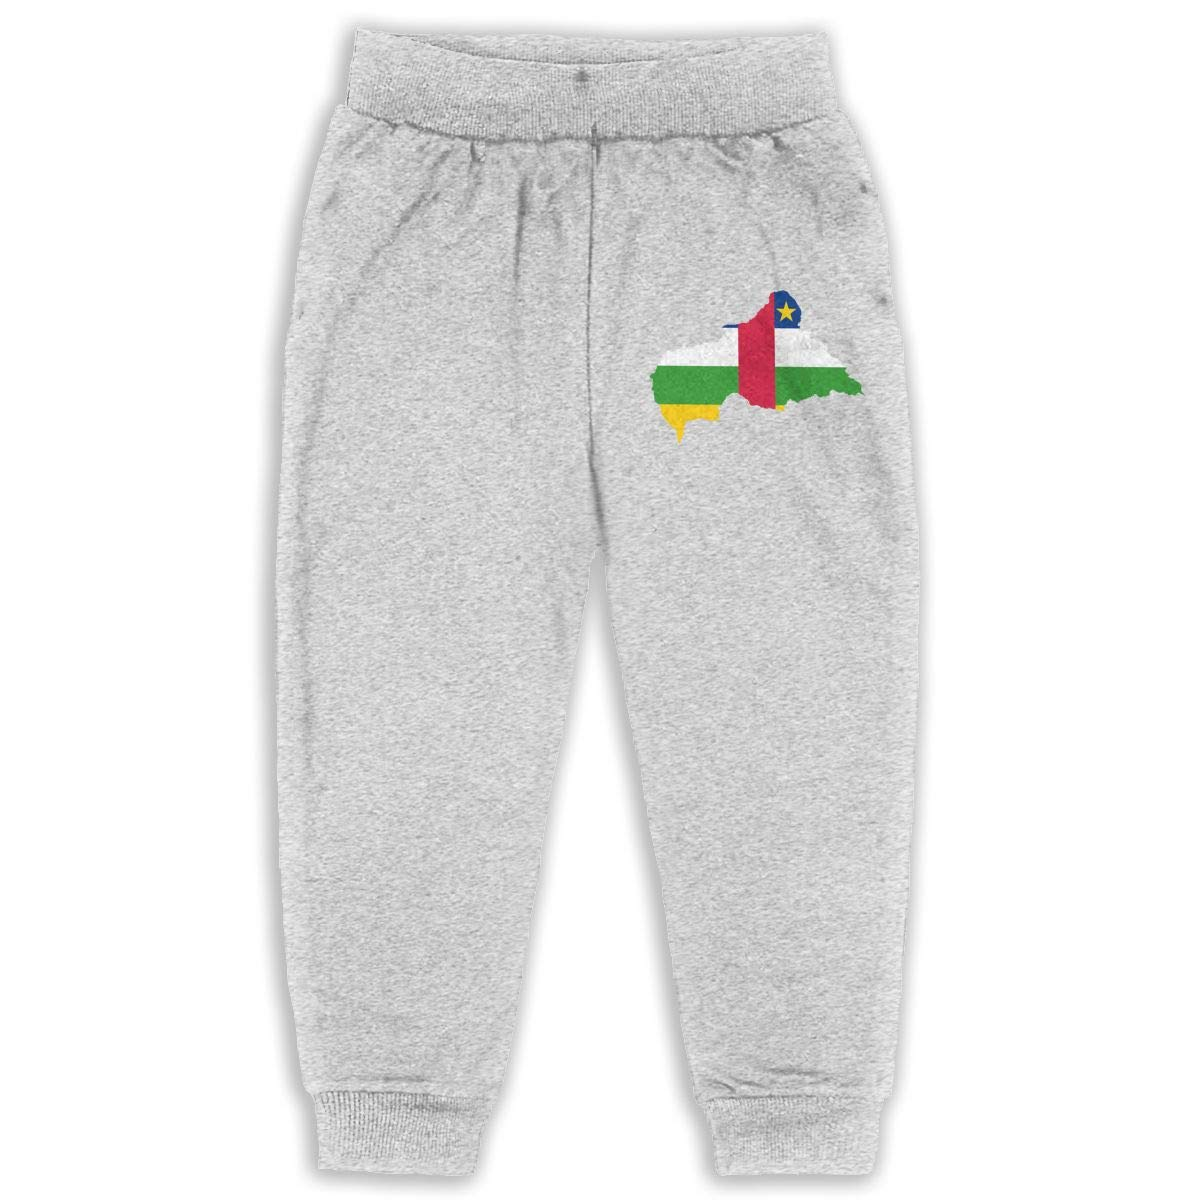 Fleece Active Joggers Elastic Pants DaXi1 Central-African Sweatpants for Boys /& Girls